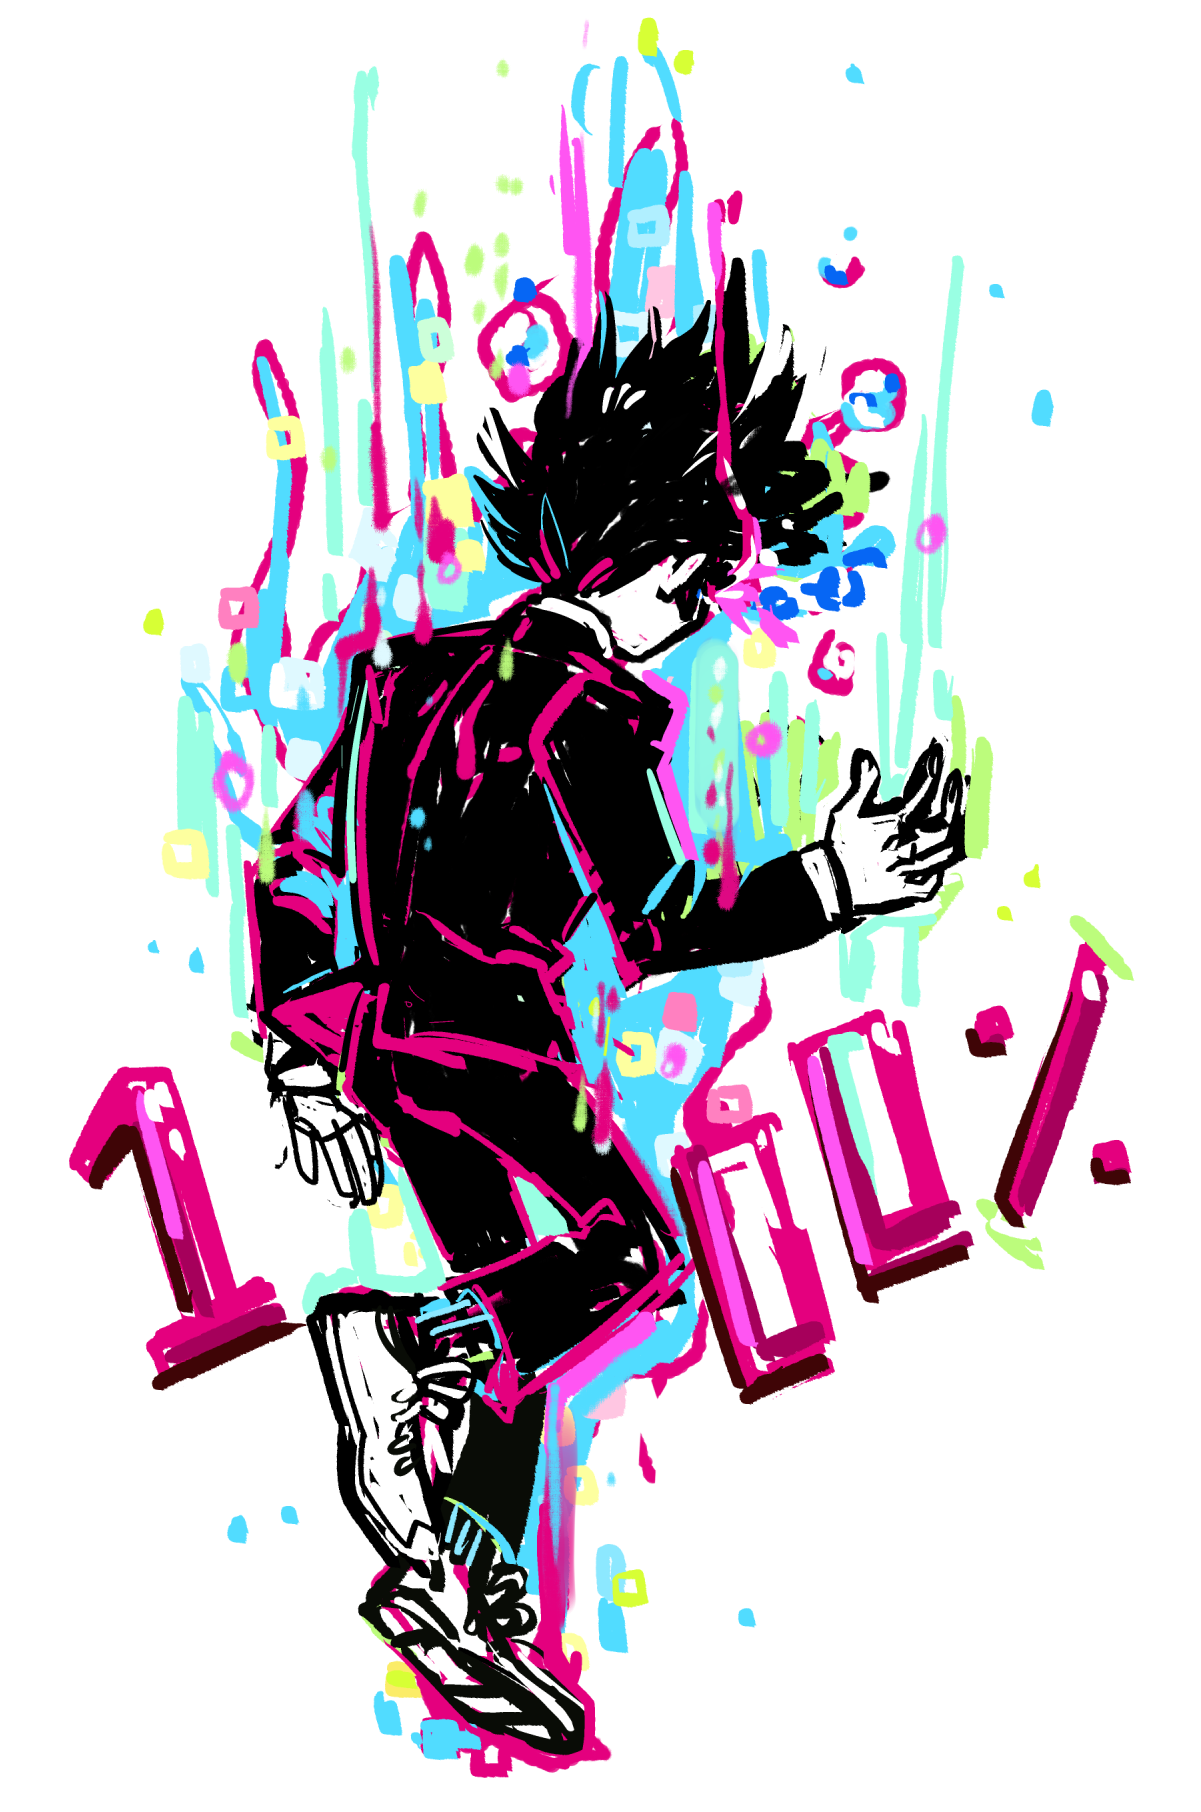 Riadoodles So I Ve Been Catching Up On Anime And I Need Season 2 Of Mob Pls Mob Psycho 100 Wallpaper Mob Psycho 100 Anime Mob Psycho 100